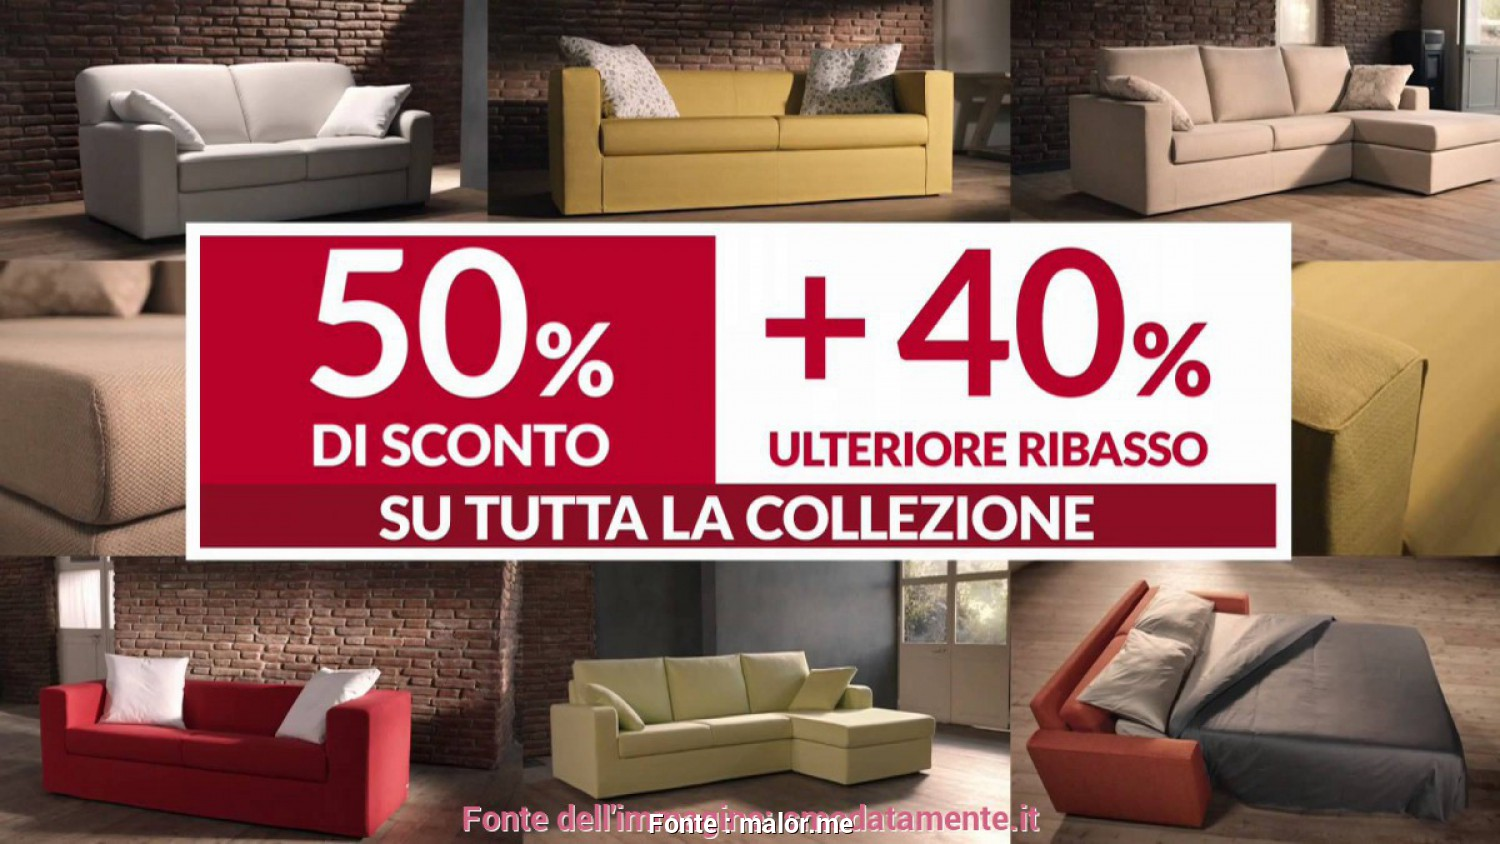 Divani Poltrone Sofa Offerta Bello 6 Poltrone E Sofa Offerte 2019 Keever For Congress